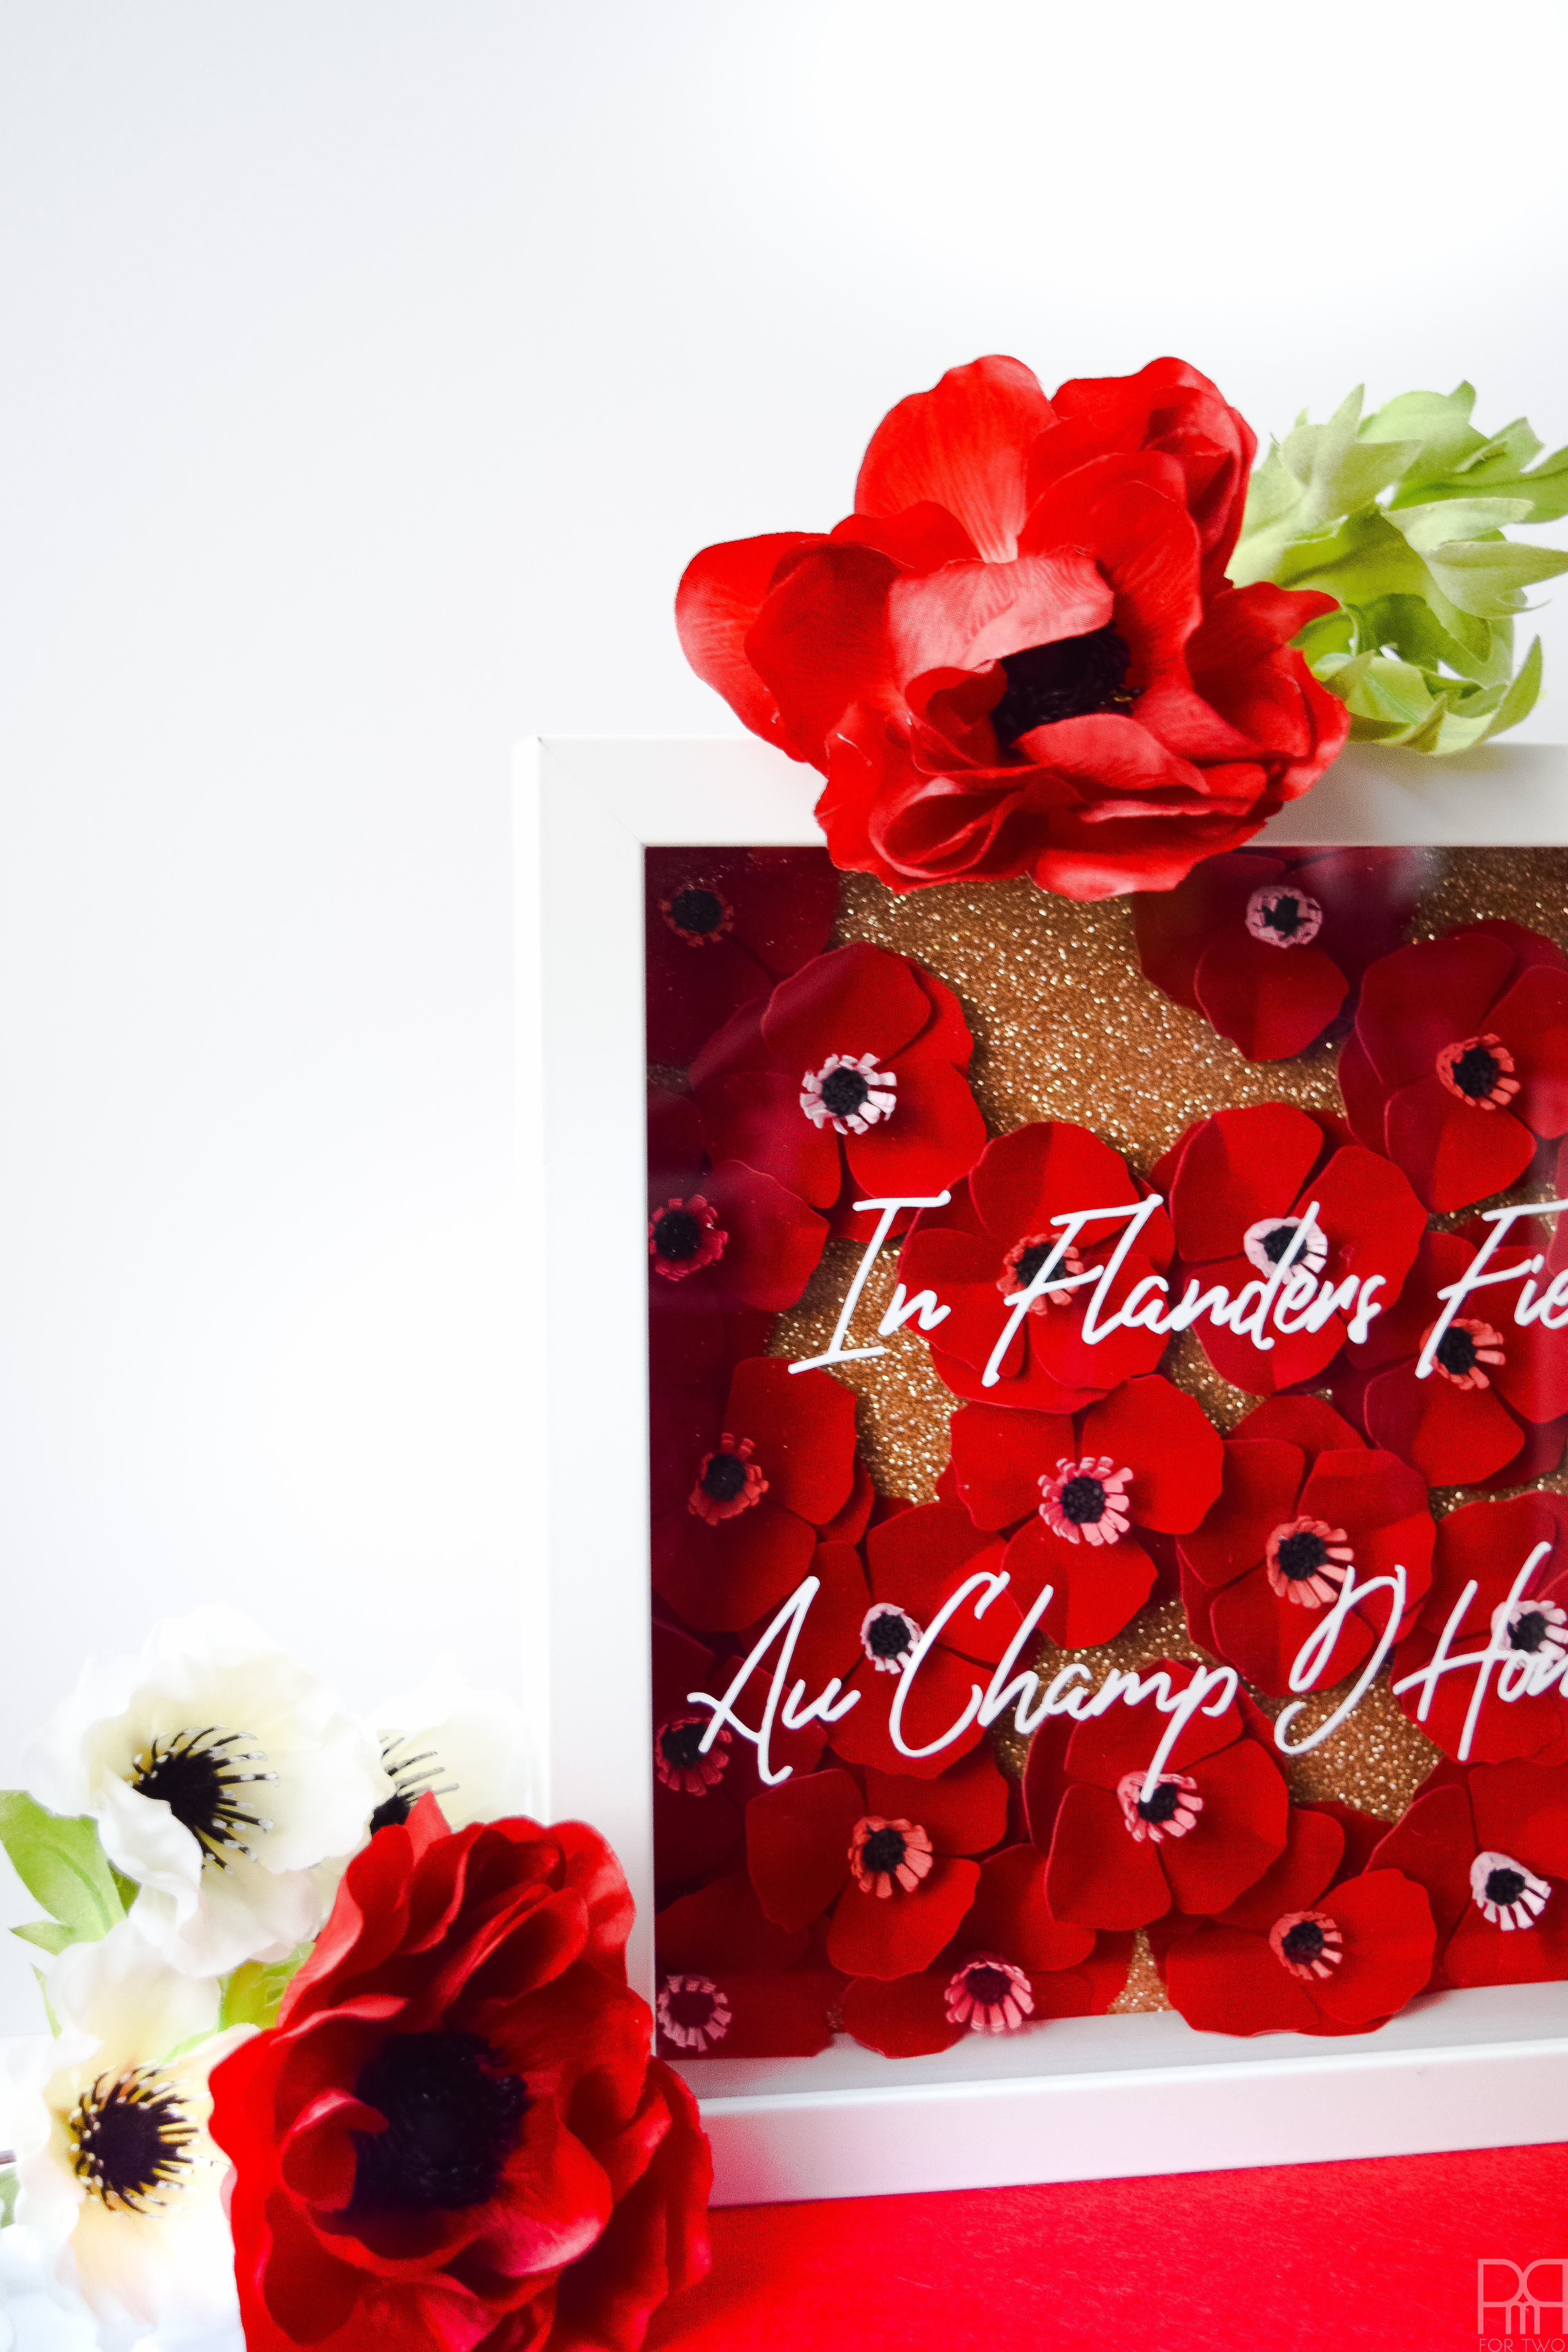 cricut-global-traditions-diy-poppy-shadow-box-3